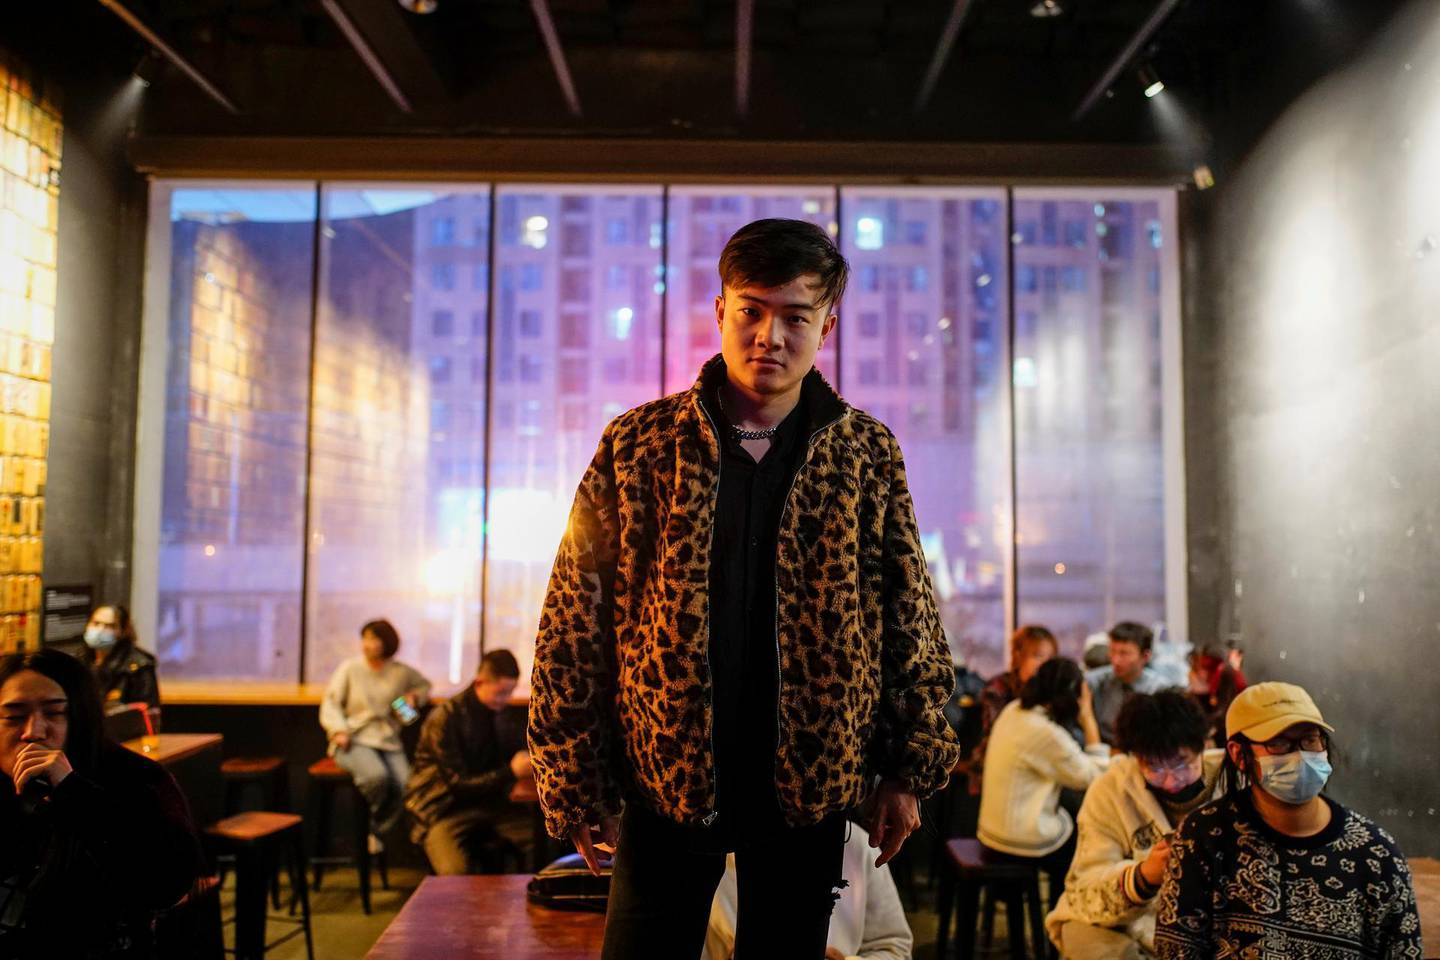 """Zhang Xinghao, lead singer of band Mad Rat, poses for a picture almost a year after the global outbreak of the coronavirus disease (COVID-19) in Wuhan, Hubei province, China December 9, 2020. """"At that time, I couldn't do anything at home. It was very boring, so I thought I needed to write some music and sing some songs to find some fun in my life,"""" Xinghao said. Picture taken December 9, 2020. REUTERS/Aly Song"""